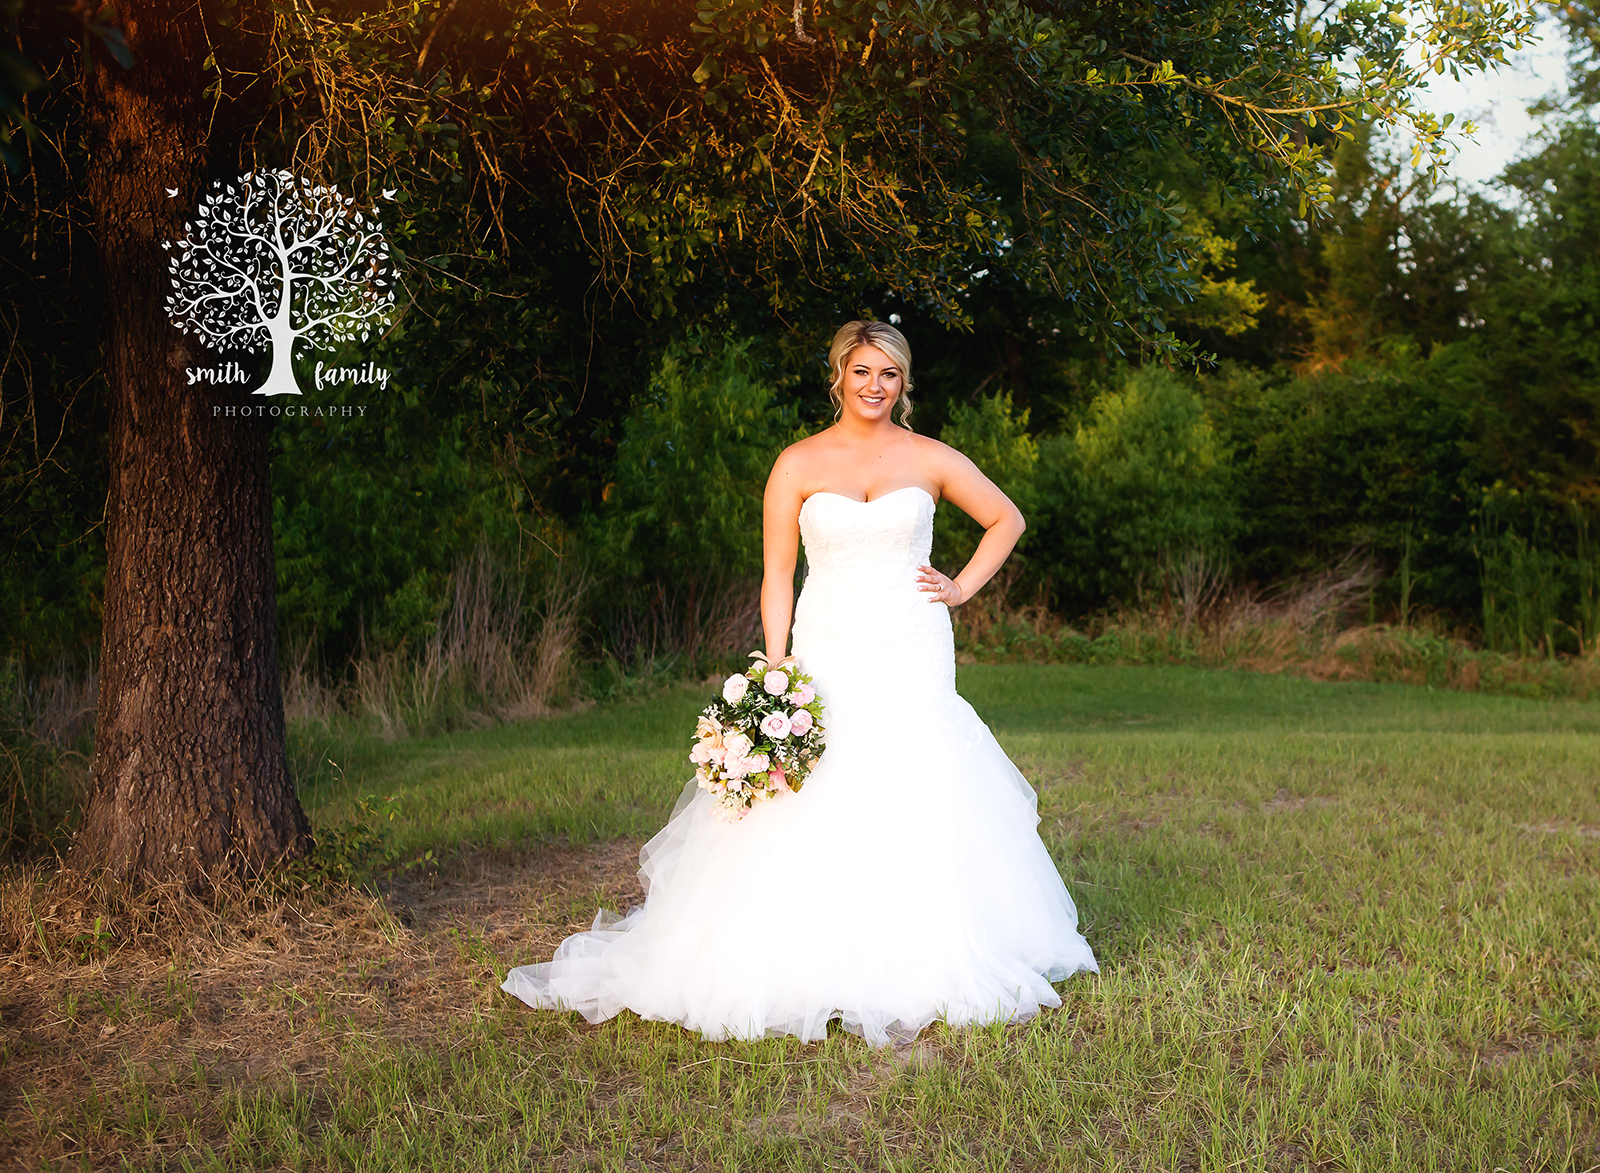 """Wonderful bridal gallery I received! So excited about my upcoming wedding! Loved every picture."" - Harlee B."